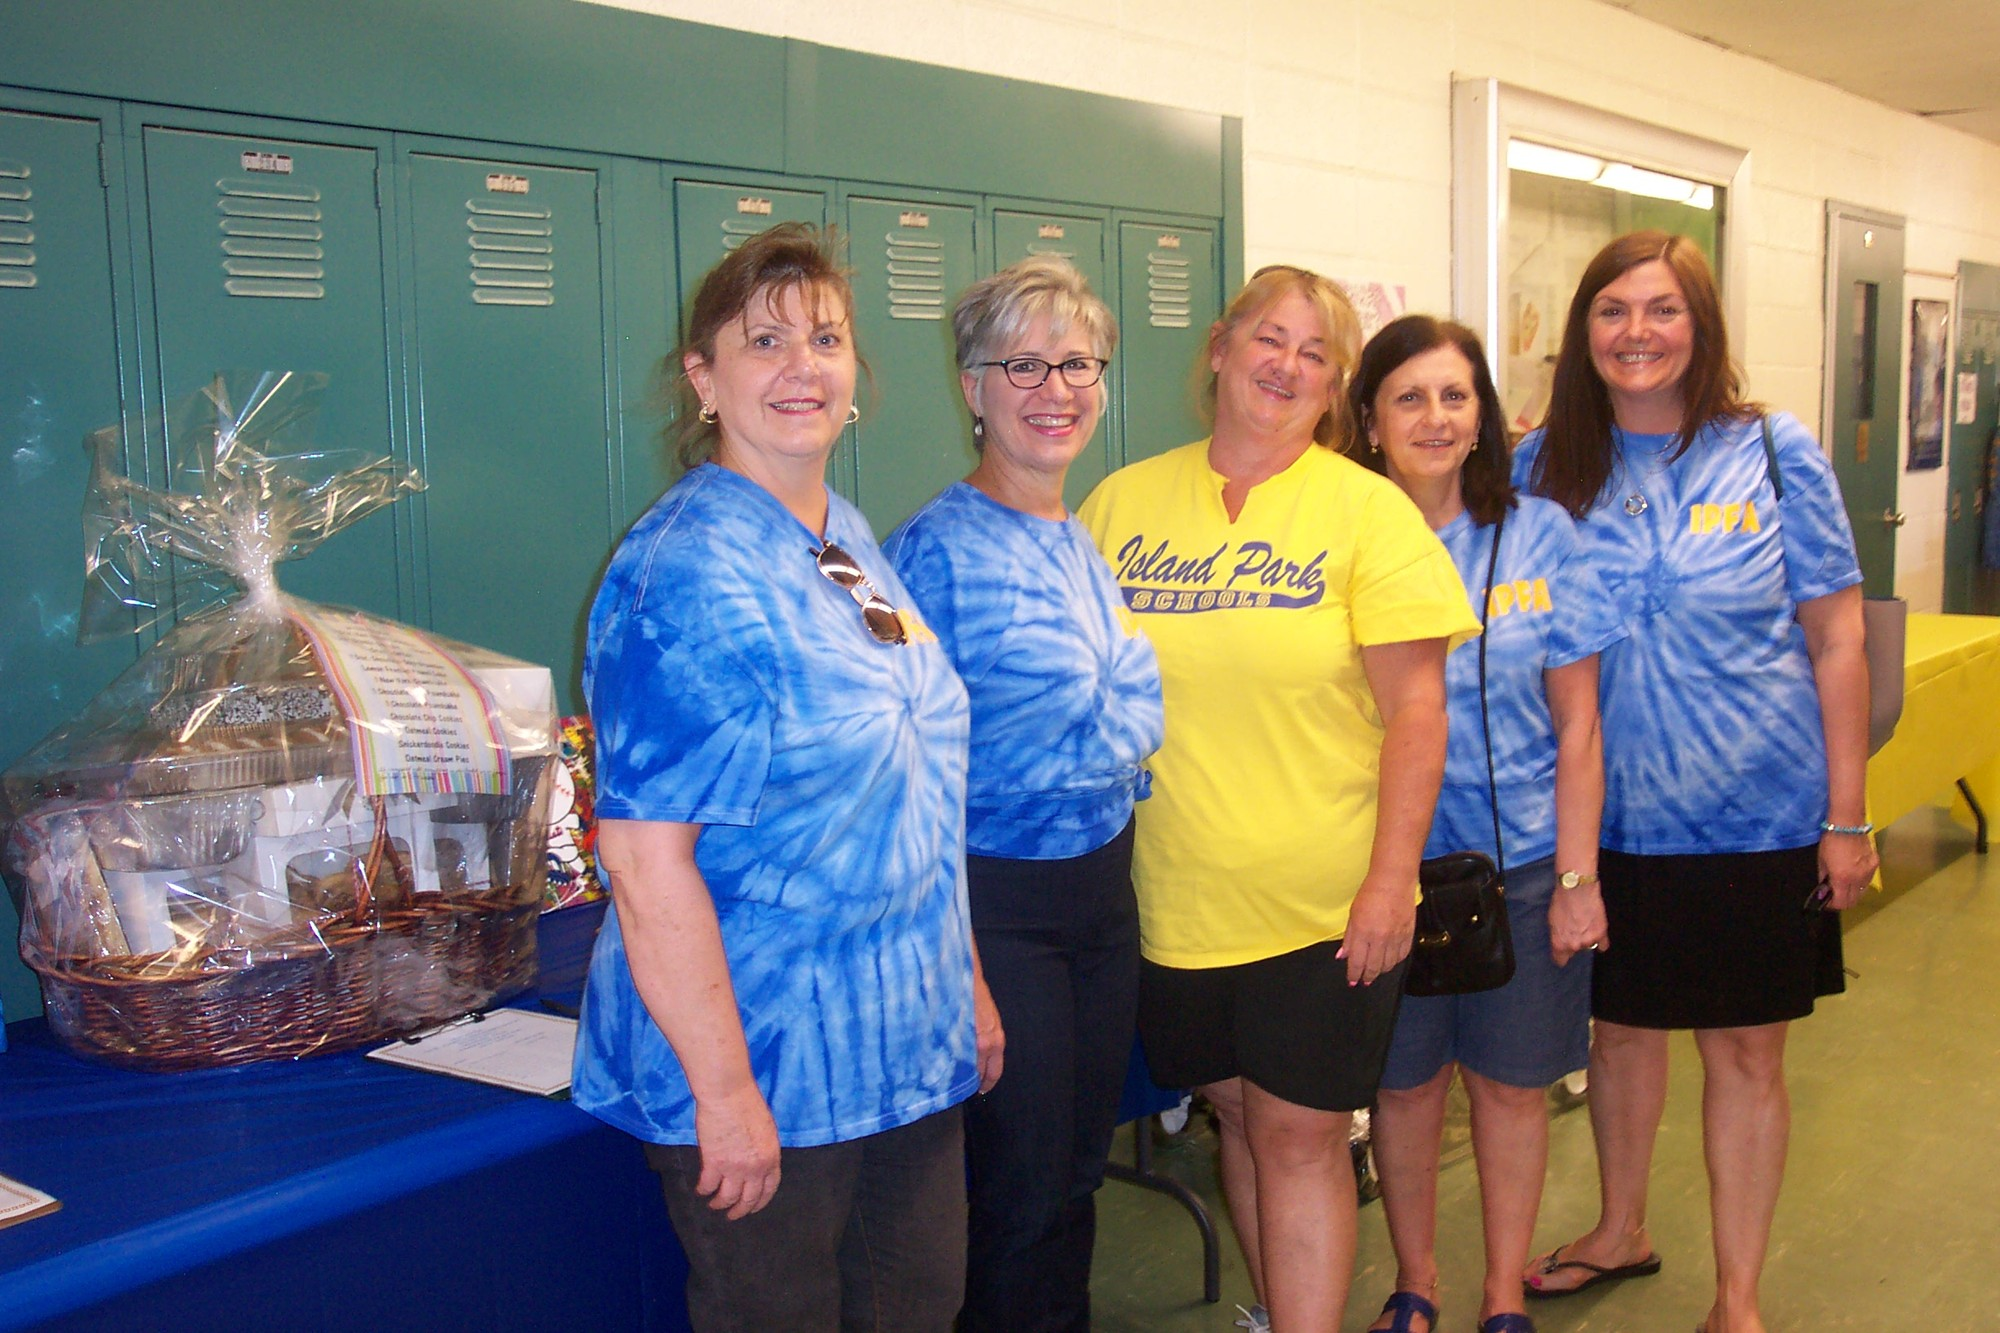 At Island Park School District's Community Day, teacher Lori Strejlau, Superintendent of Schools Dr. Rosmarie Bovino, Cathy Wirtz and school board trustees Diana Caracciolo and Tara Byrne.